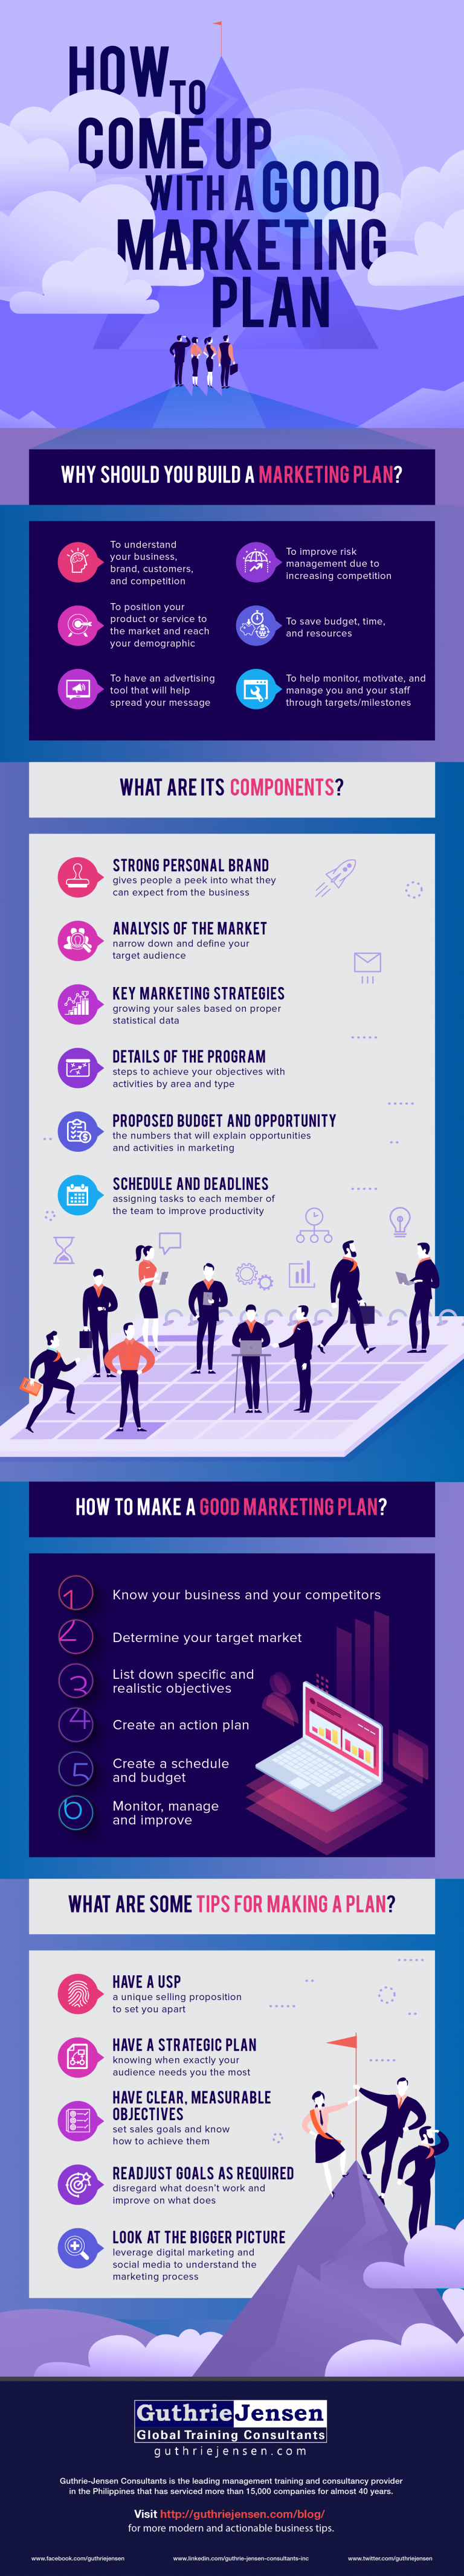 How to Come Up with a Good Marketing Plan